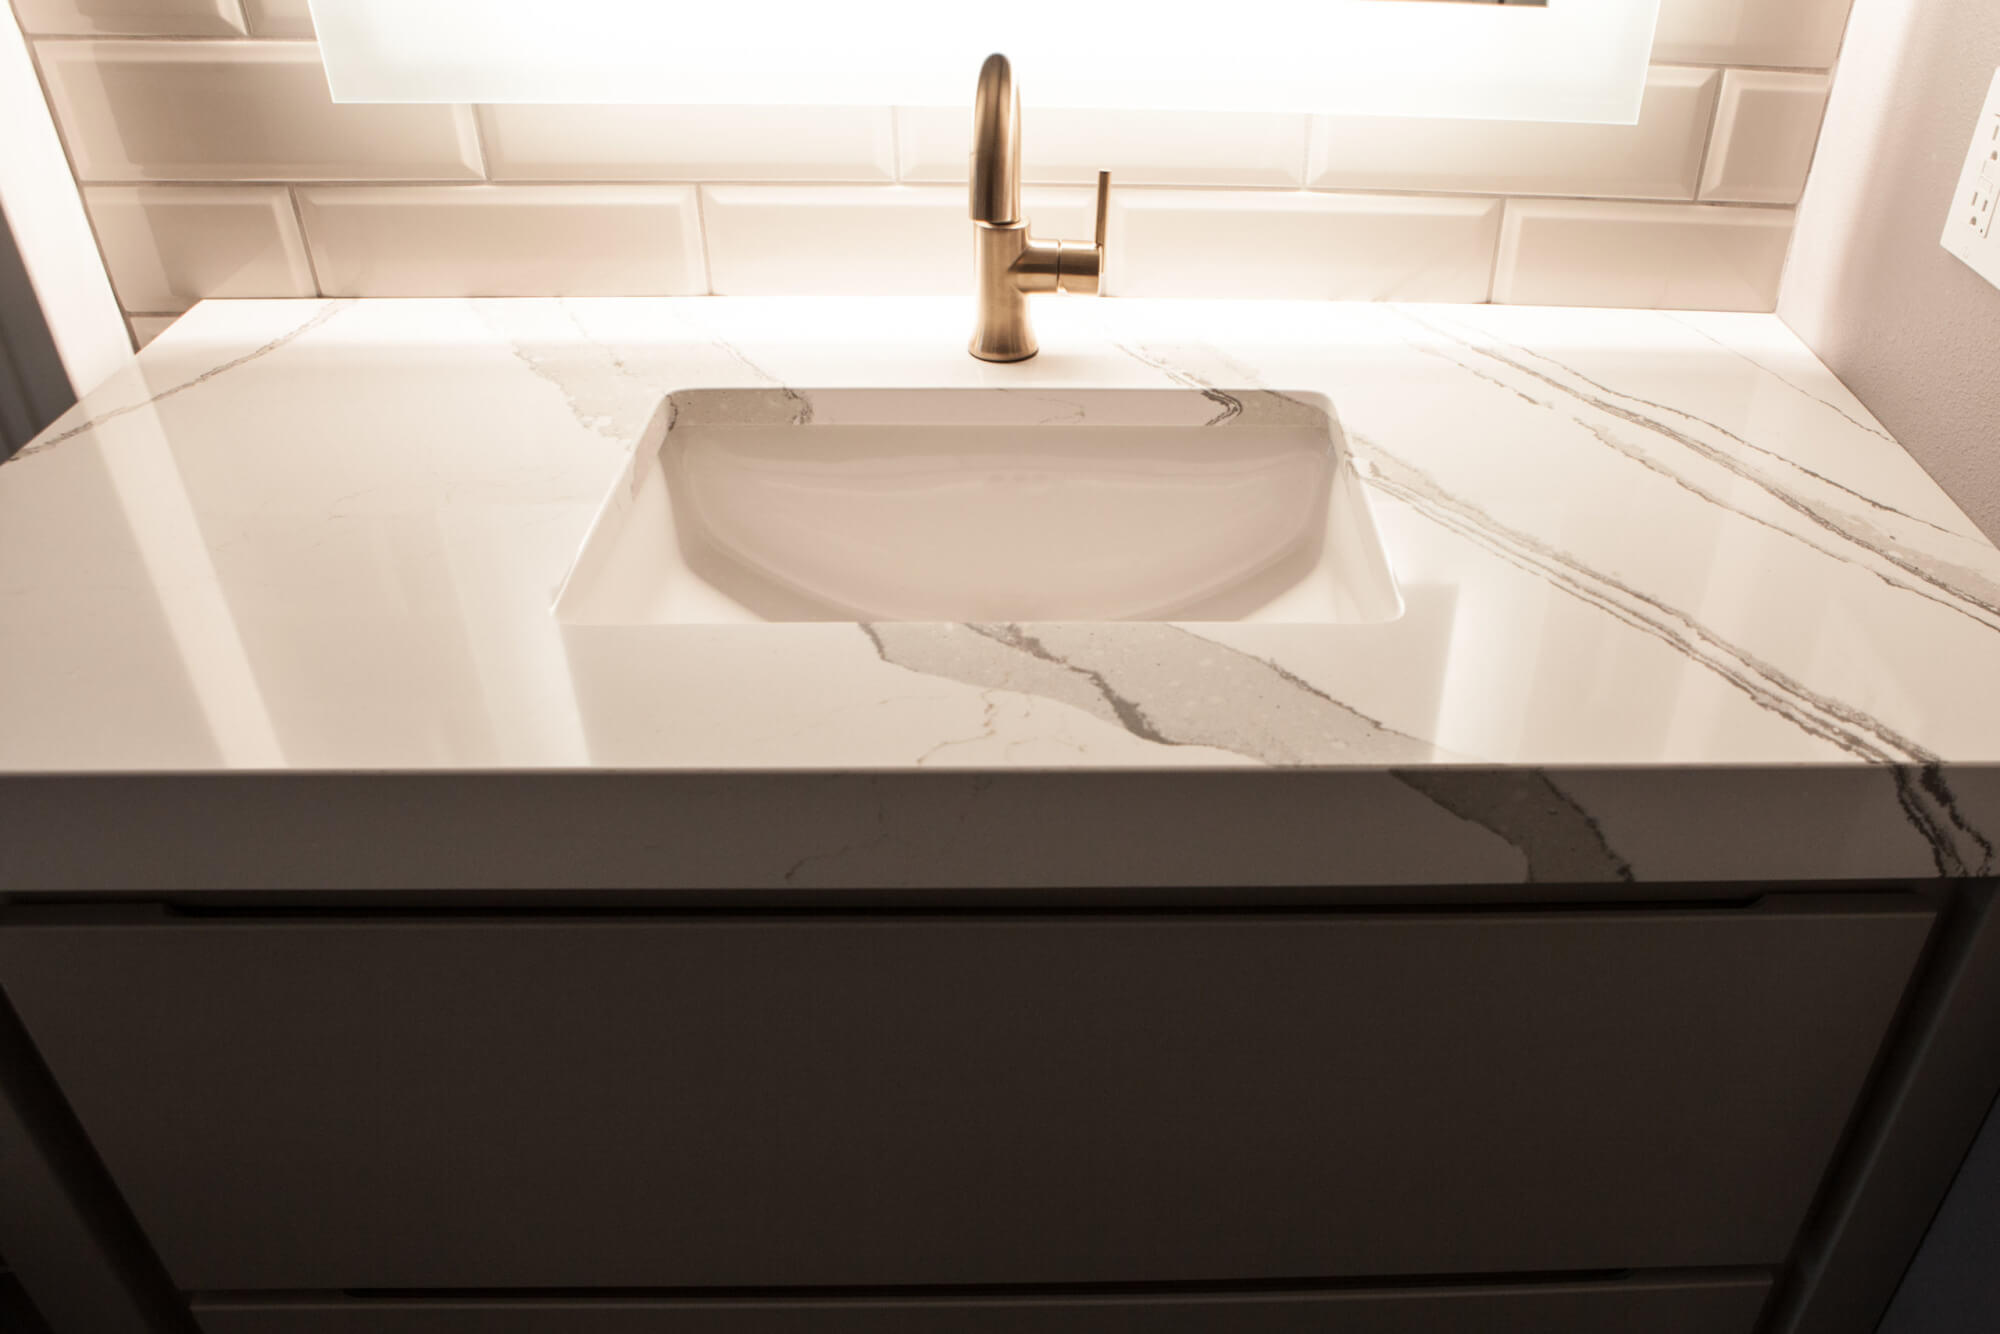 marble sink counter top illuminated by a light mirror